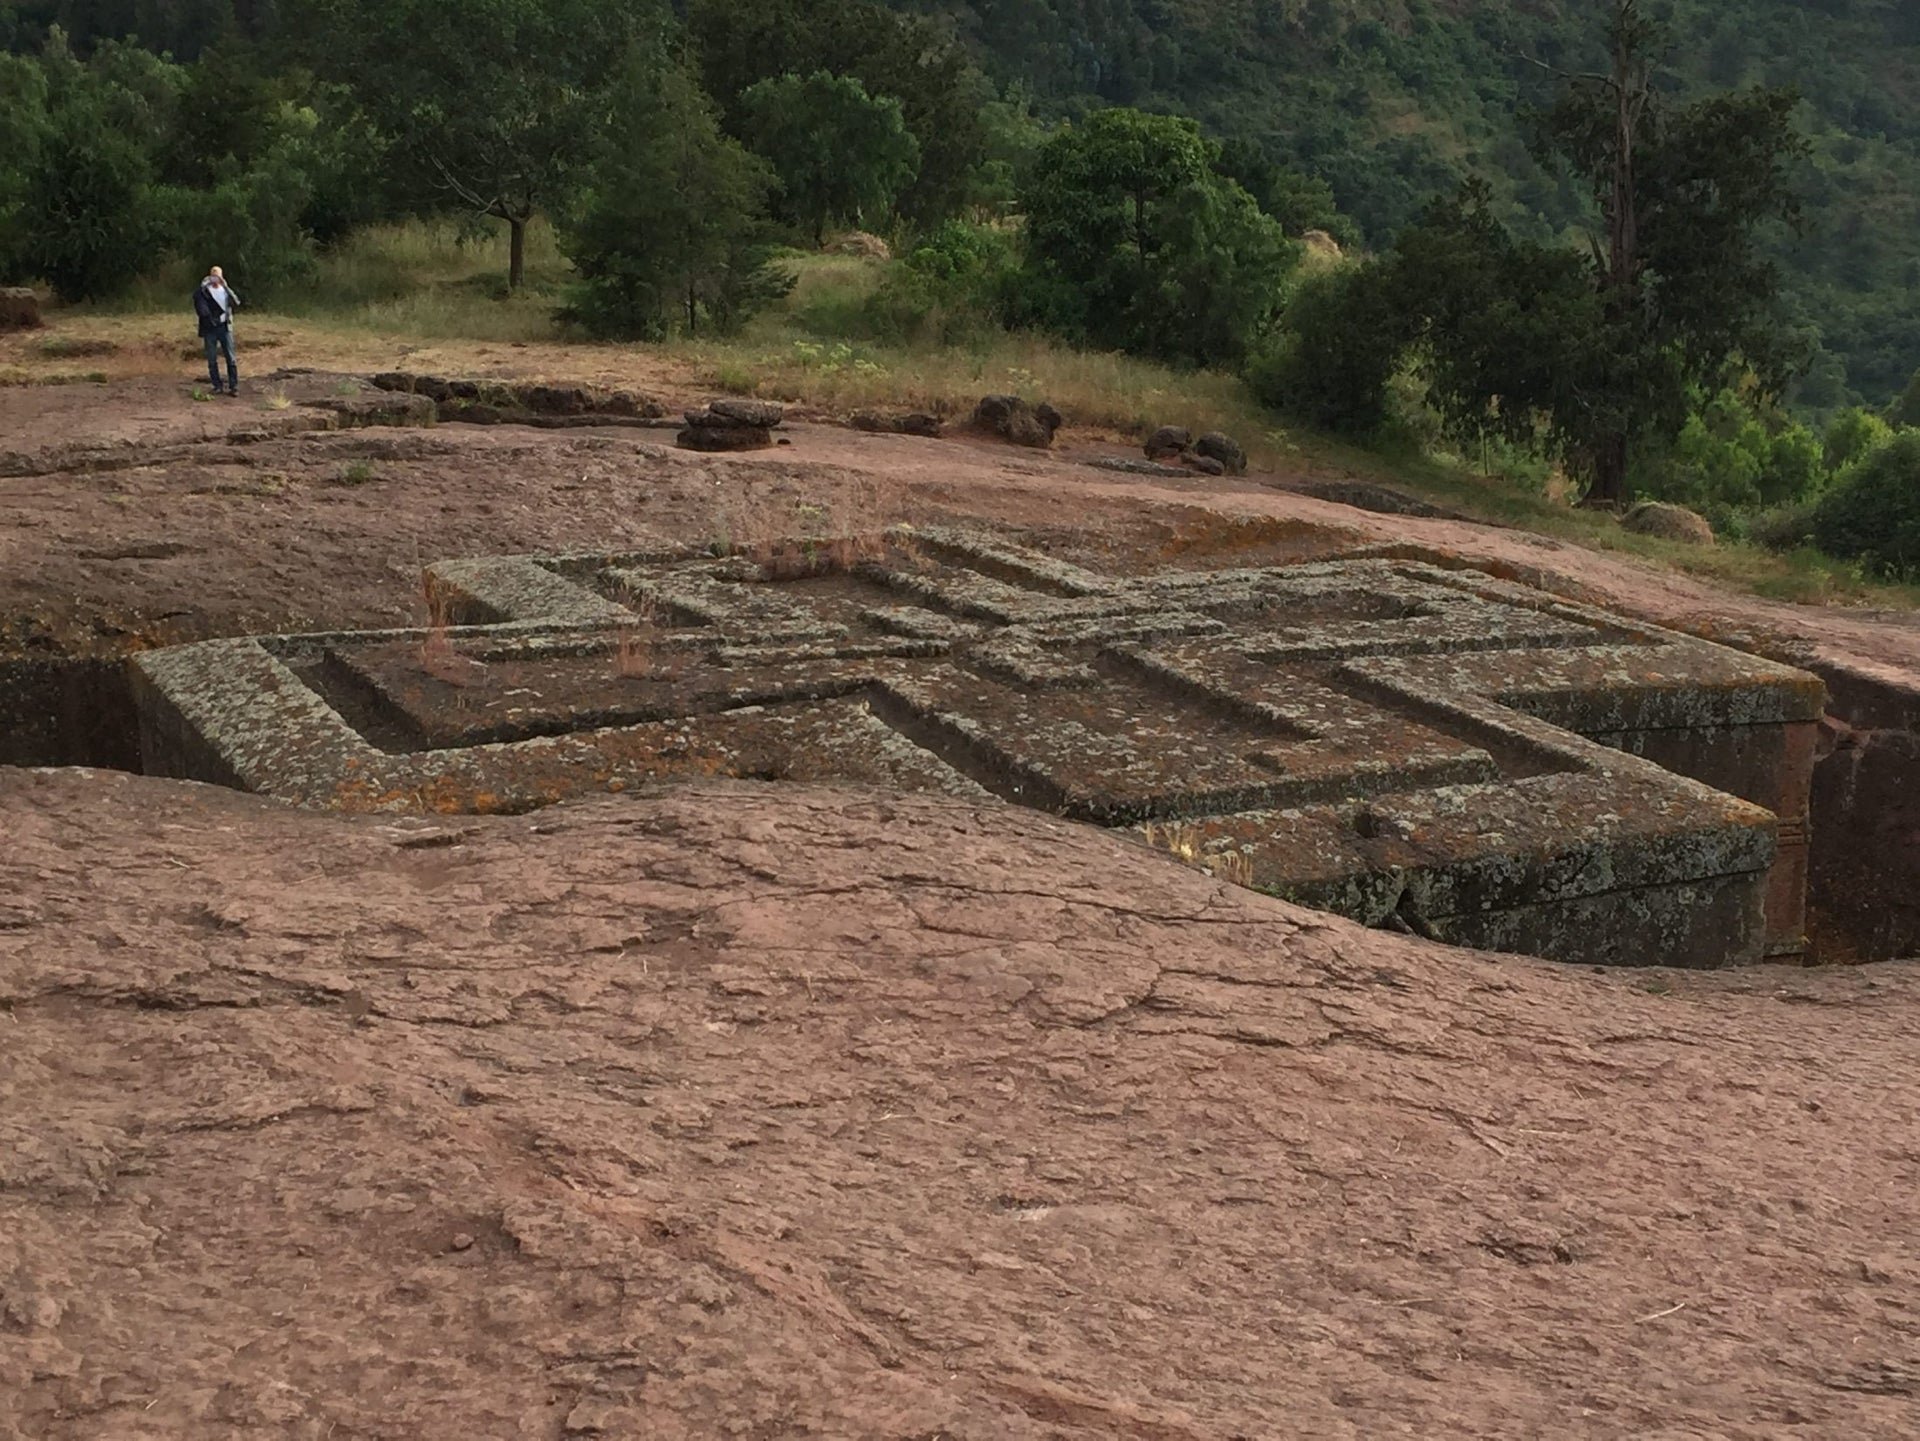 The cross-shaped rooftop of Beta Giyorgis (Church of St. George), one of the 11 churches carved out of the earth in the 11th and 12th centuries, in Lalibela, Ethiopia.